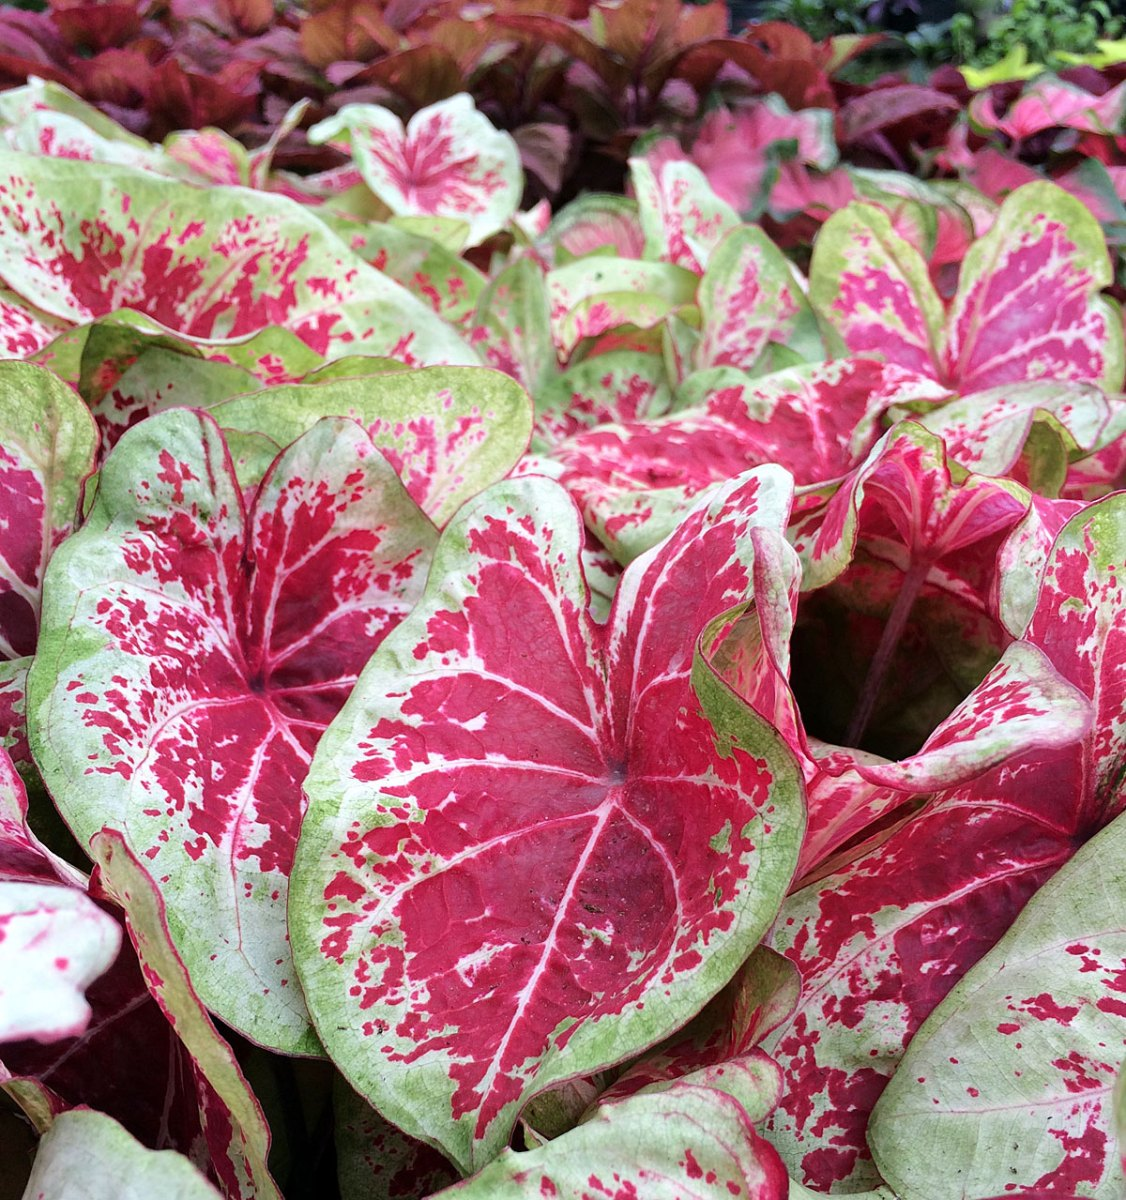 Red caladium leaves